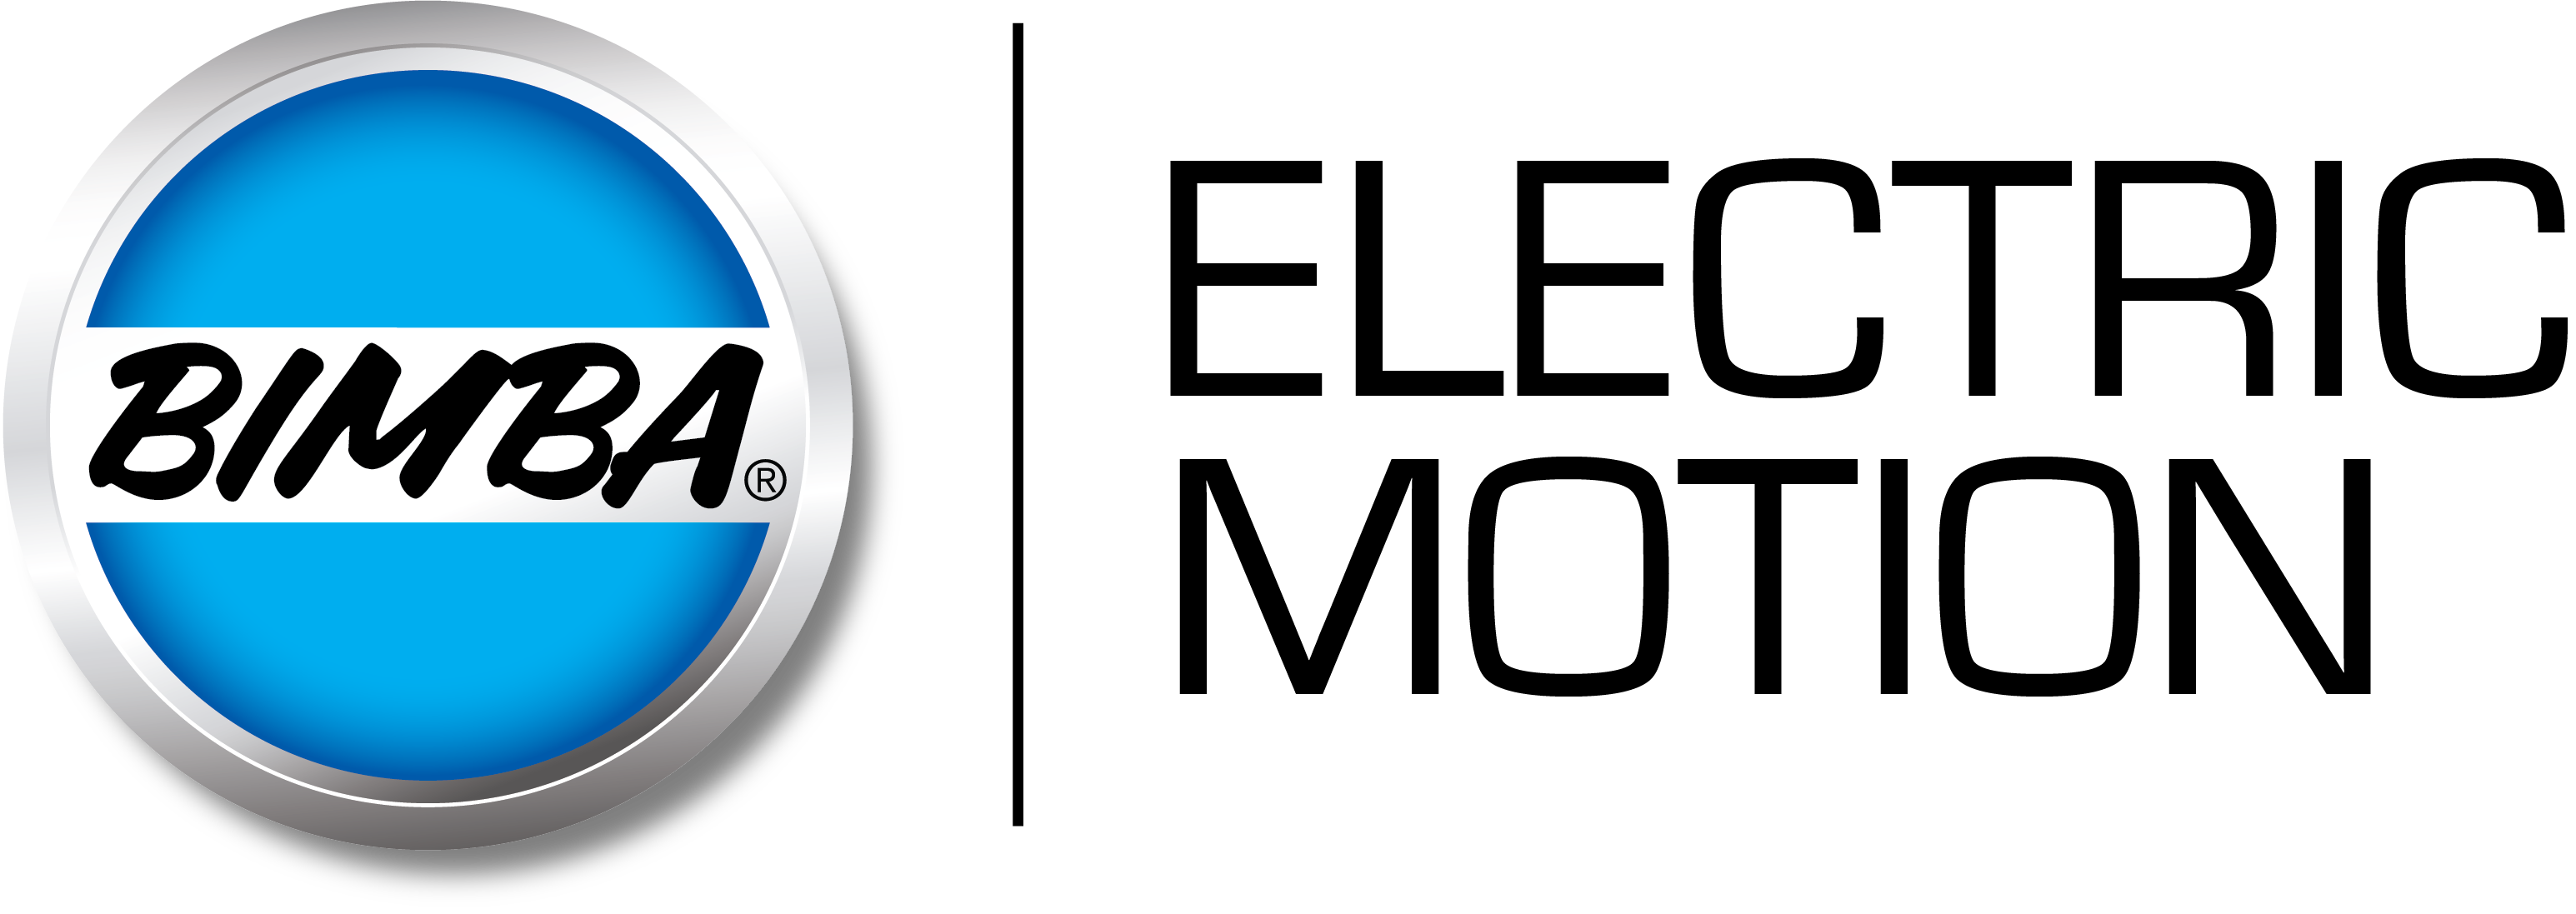 New_Bimba_Dim_4c_logo_ELECTRIC_MOTION.png